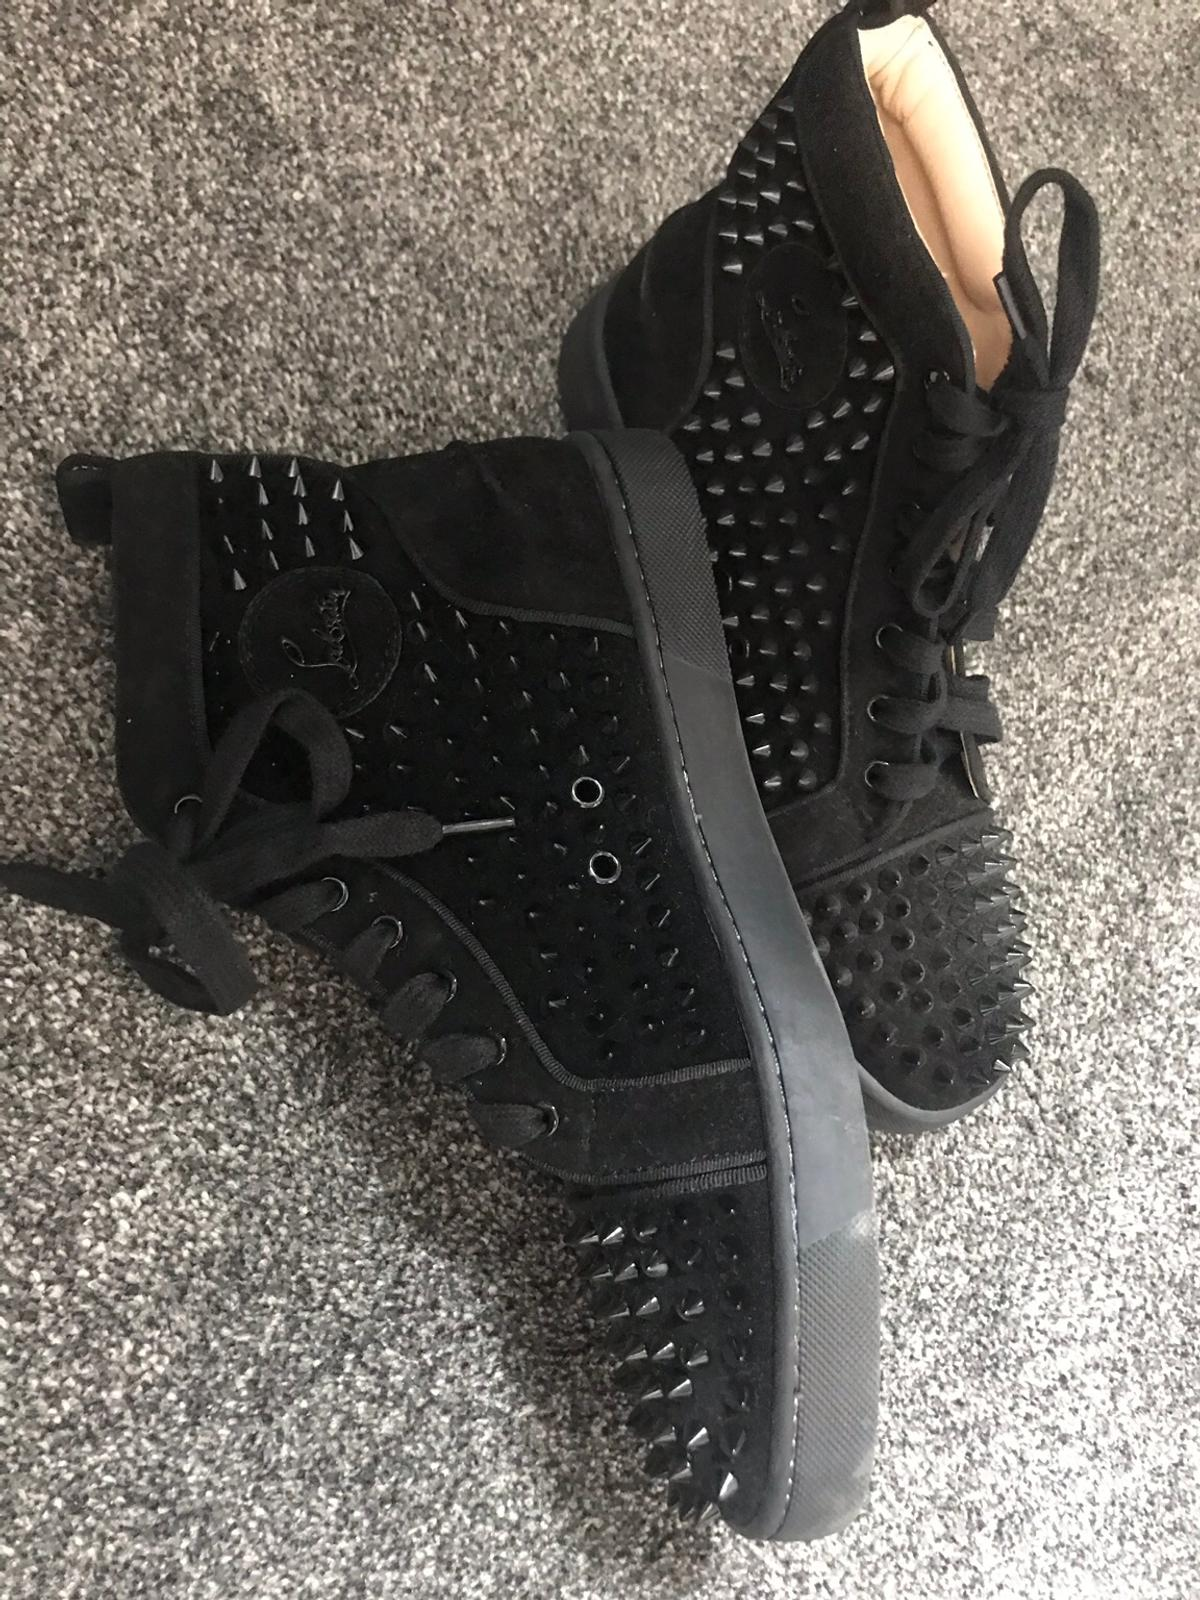 on sale 646fd a907f Christian loub inspired boot/trainers